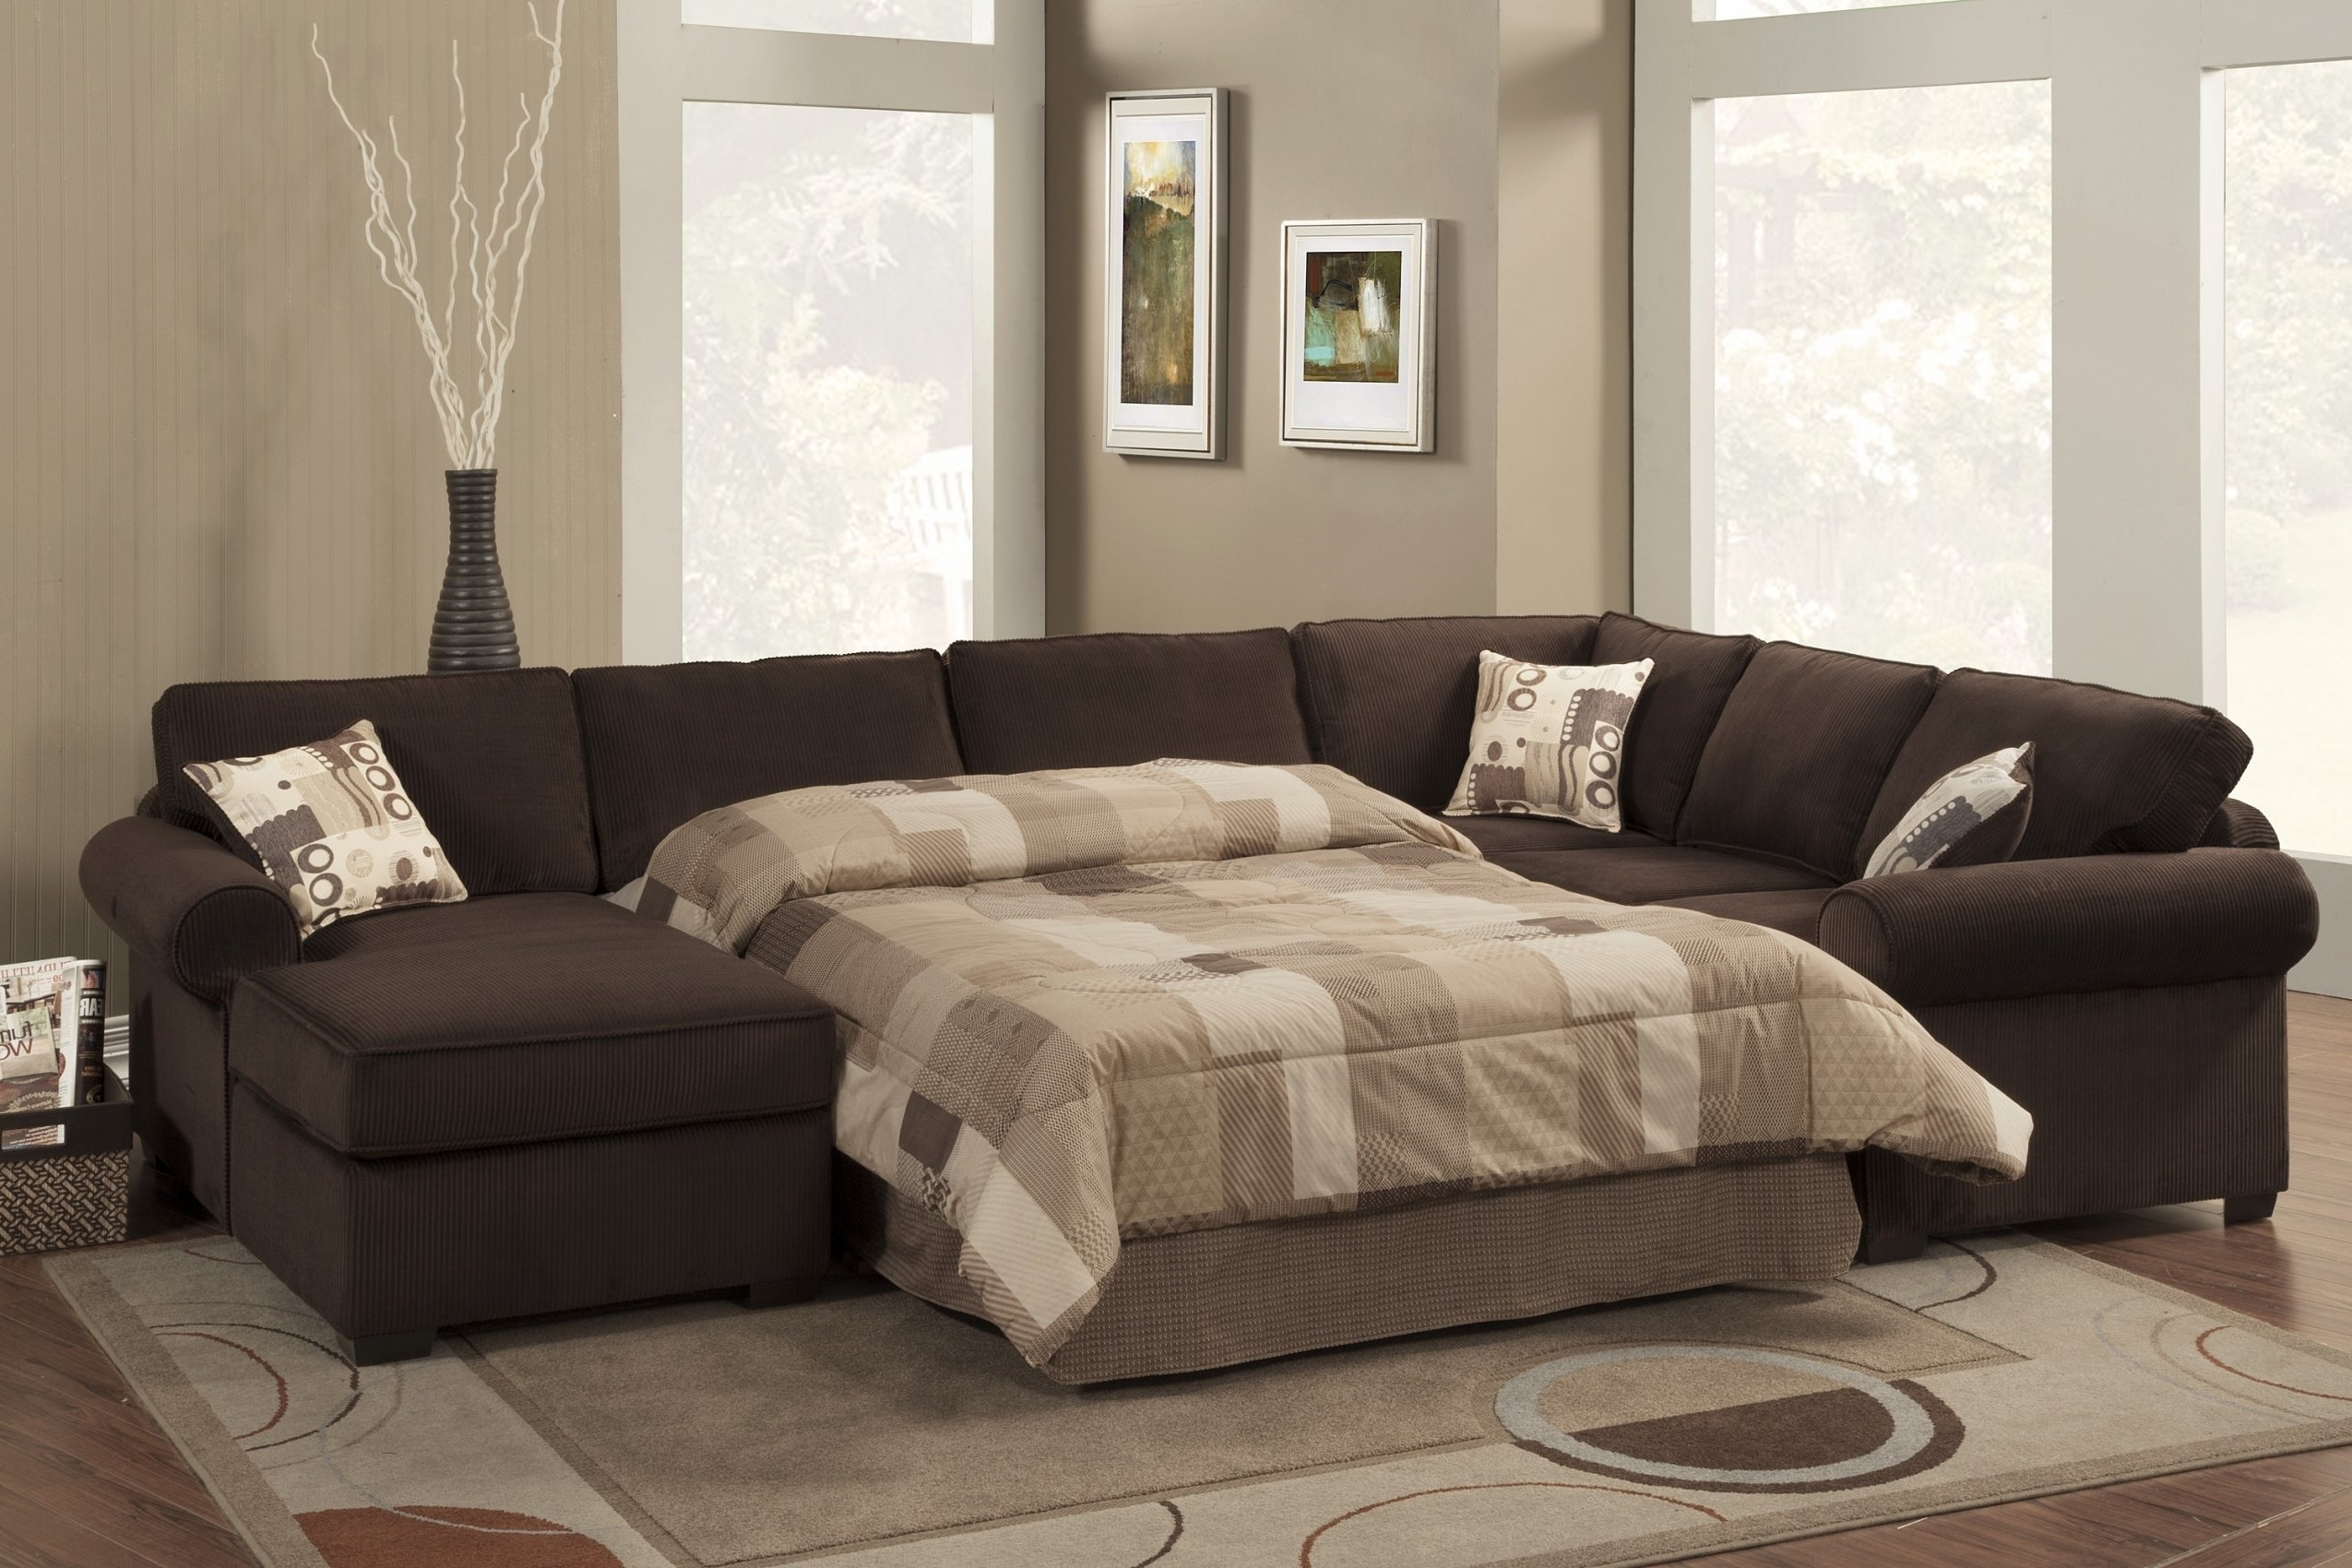 Sectional Sleeper Sofa Microfiber For Favorite Chaise Sectional Sleepers (View 7 of 15)